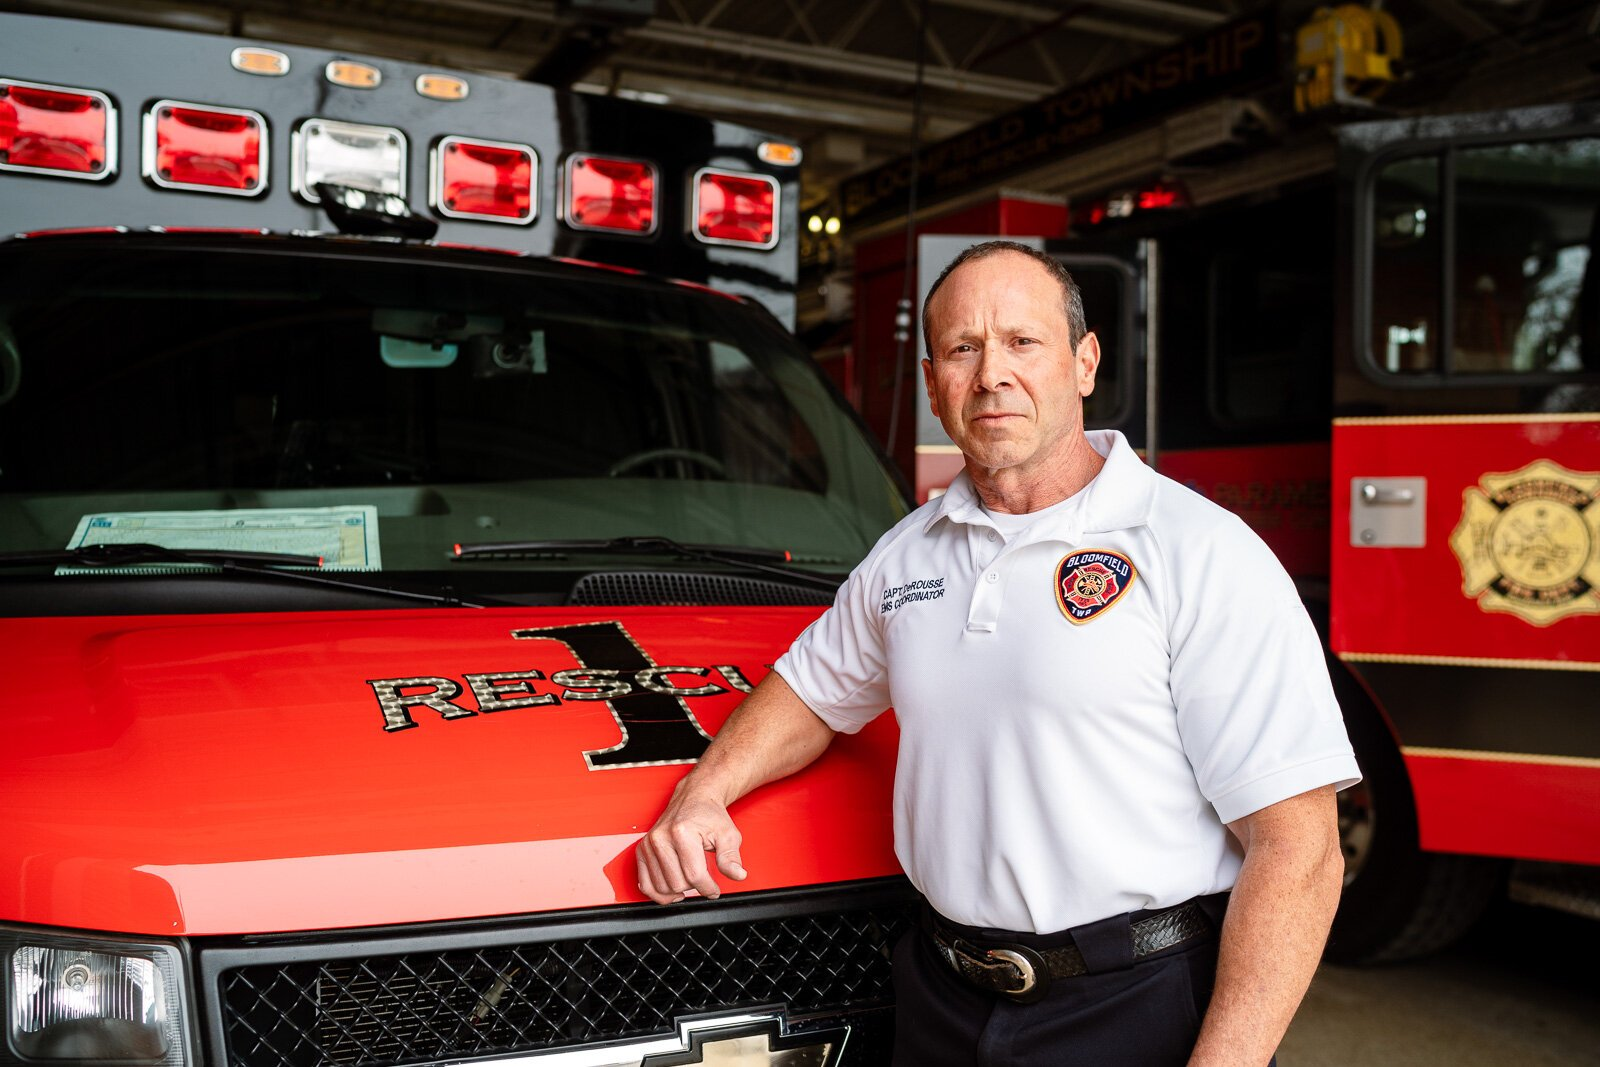 Capt. Matt DeRousse, EMS coordinator for the Bloomfield Township Fire Department,